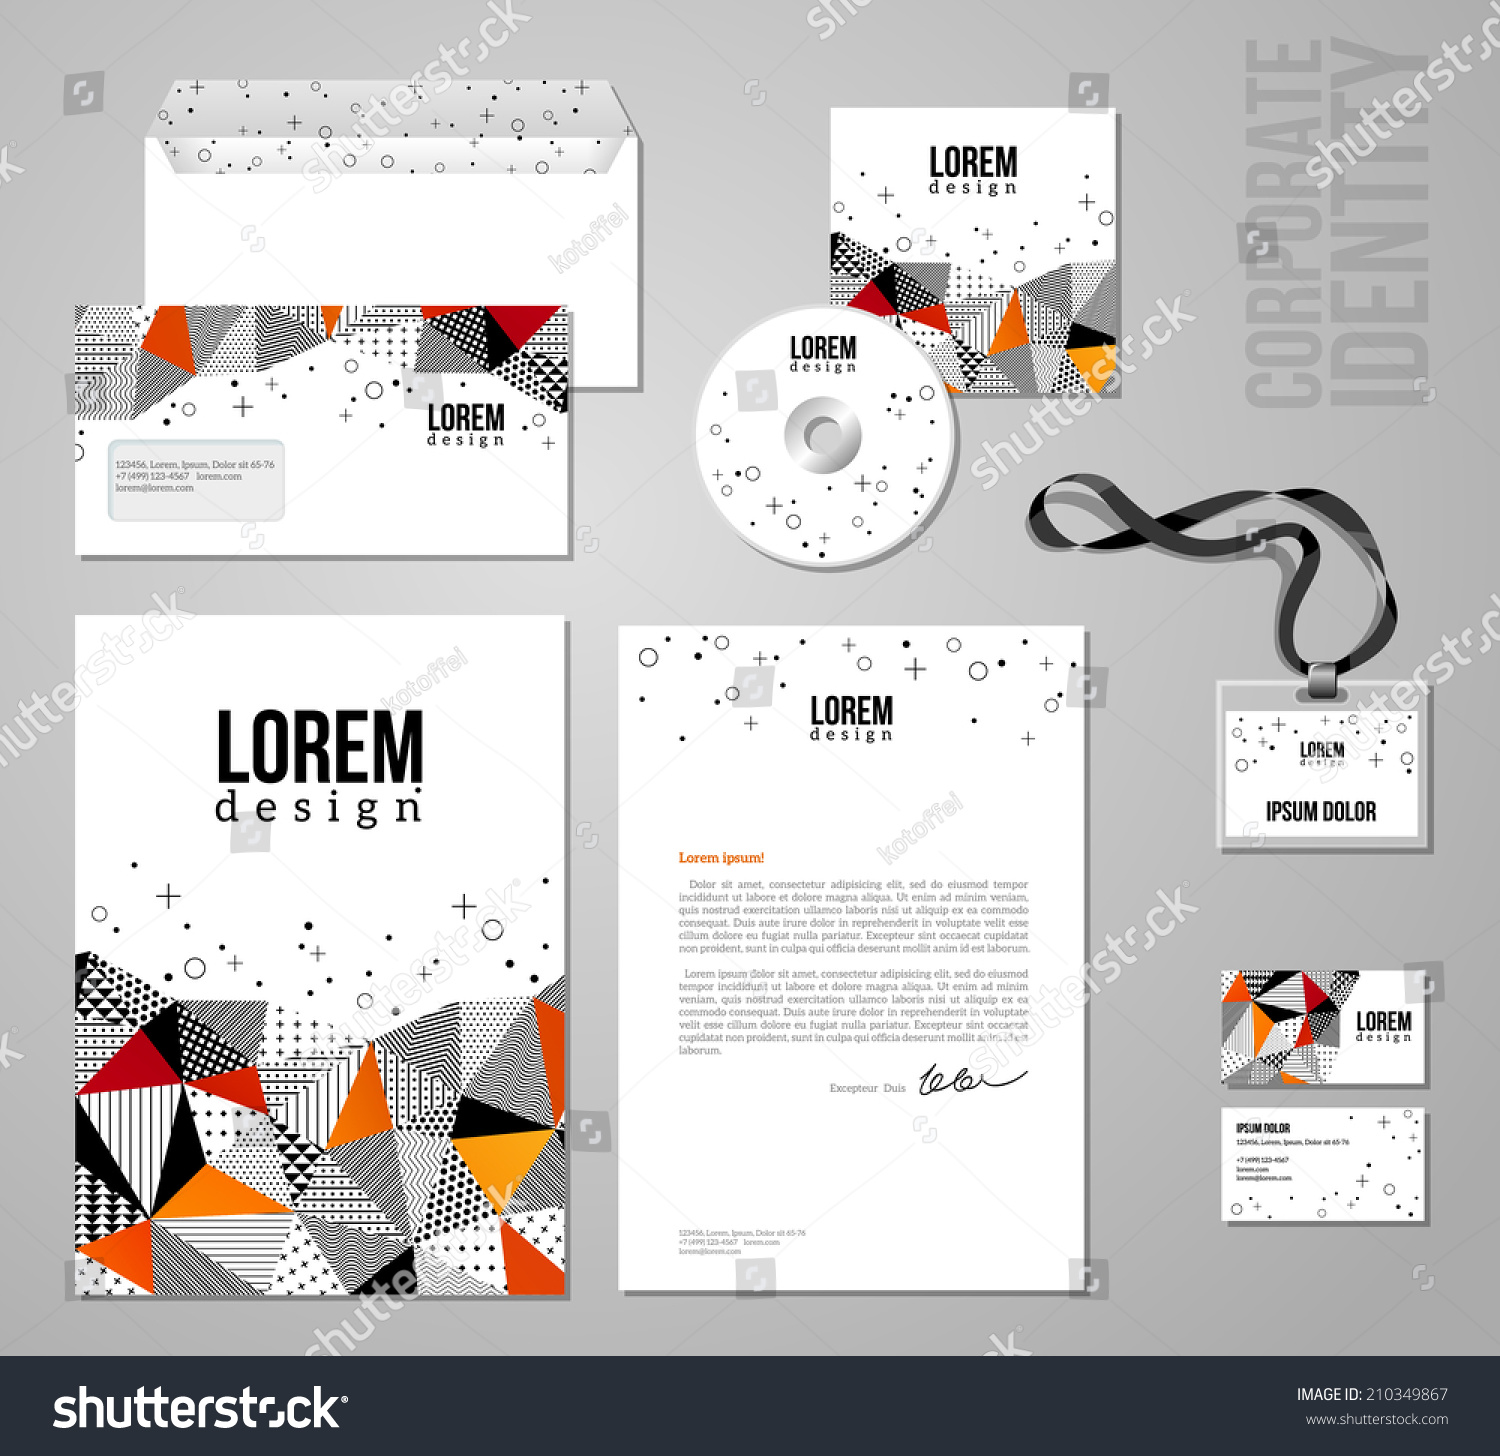 Pretty 1 Page Brochure Template Thick 1 Year Experience Resume Format For Java Shaped 1 Year Experience Resume Format For Software Developer 10 Steps To Creating A Resume Old 10 Tips To Making A Resume Dark1099 Form Template Corporate Identity Template In Patch Work Colorful Style. Vector ..